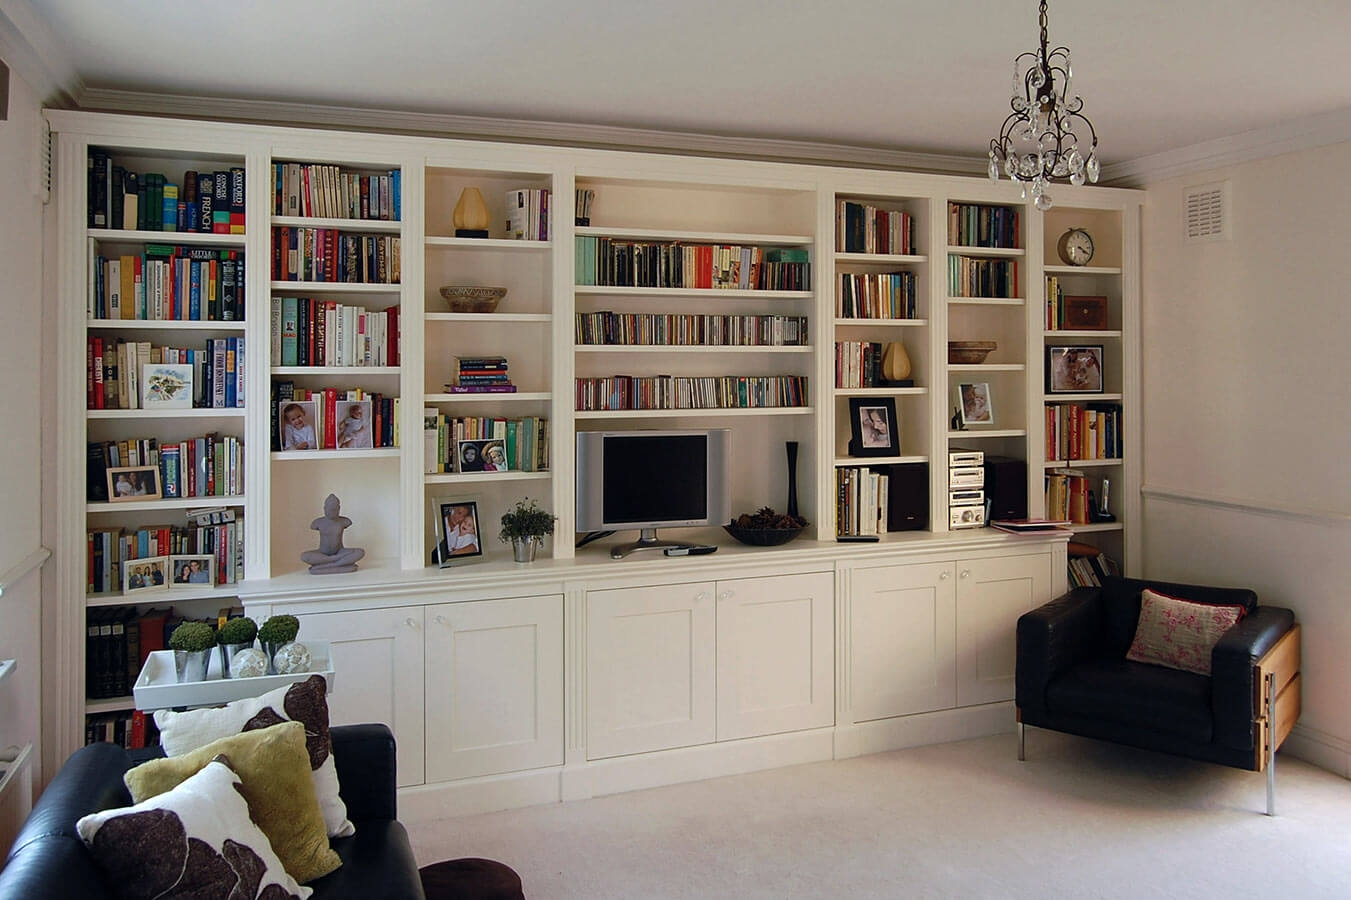 Custom Made Living Rooms Display Tv And Media Units In Bespoke Bookshelves (#9 of 14)